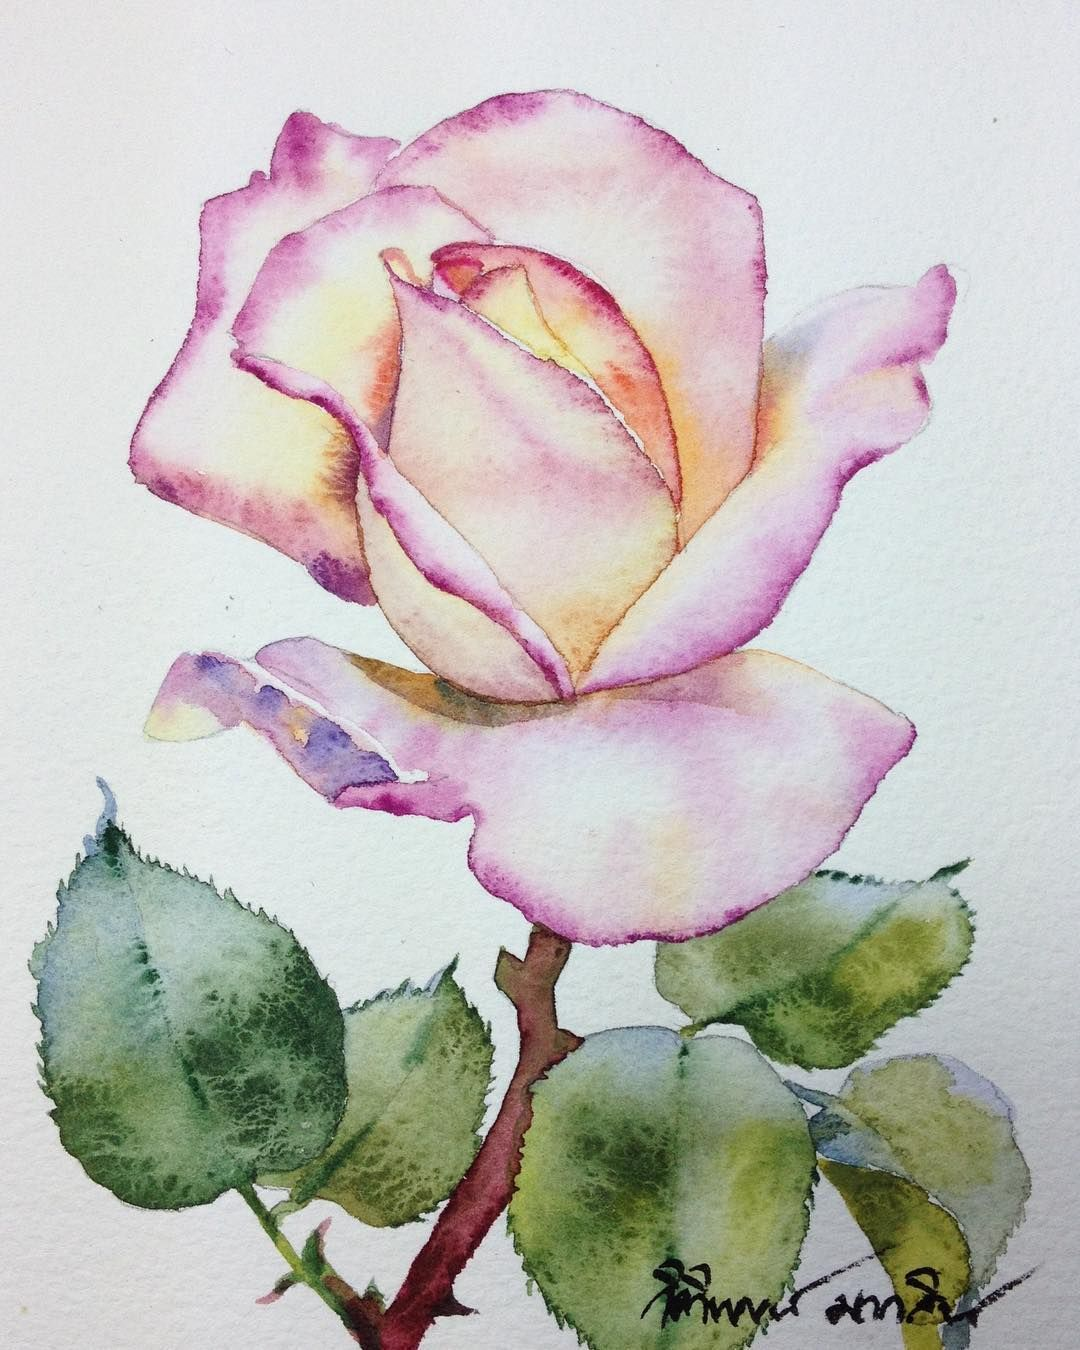 Single Rose Watercolour Flowers Watercolorpainting Watercolorgallery Watercolorist Watercolor Waterblog